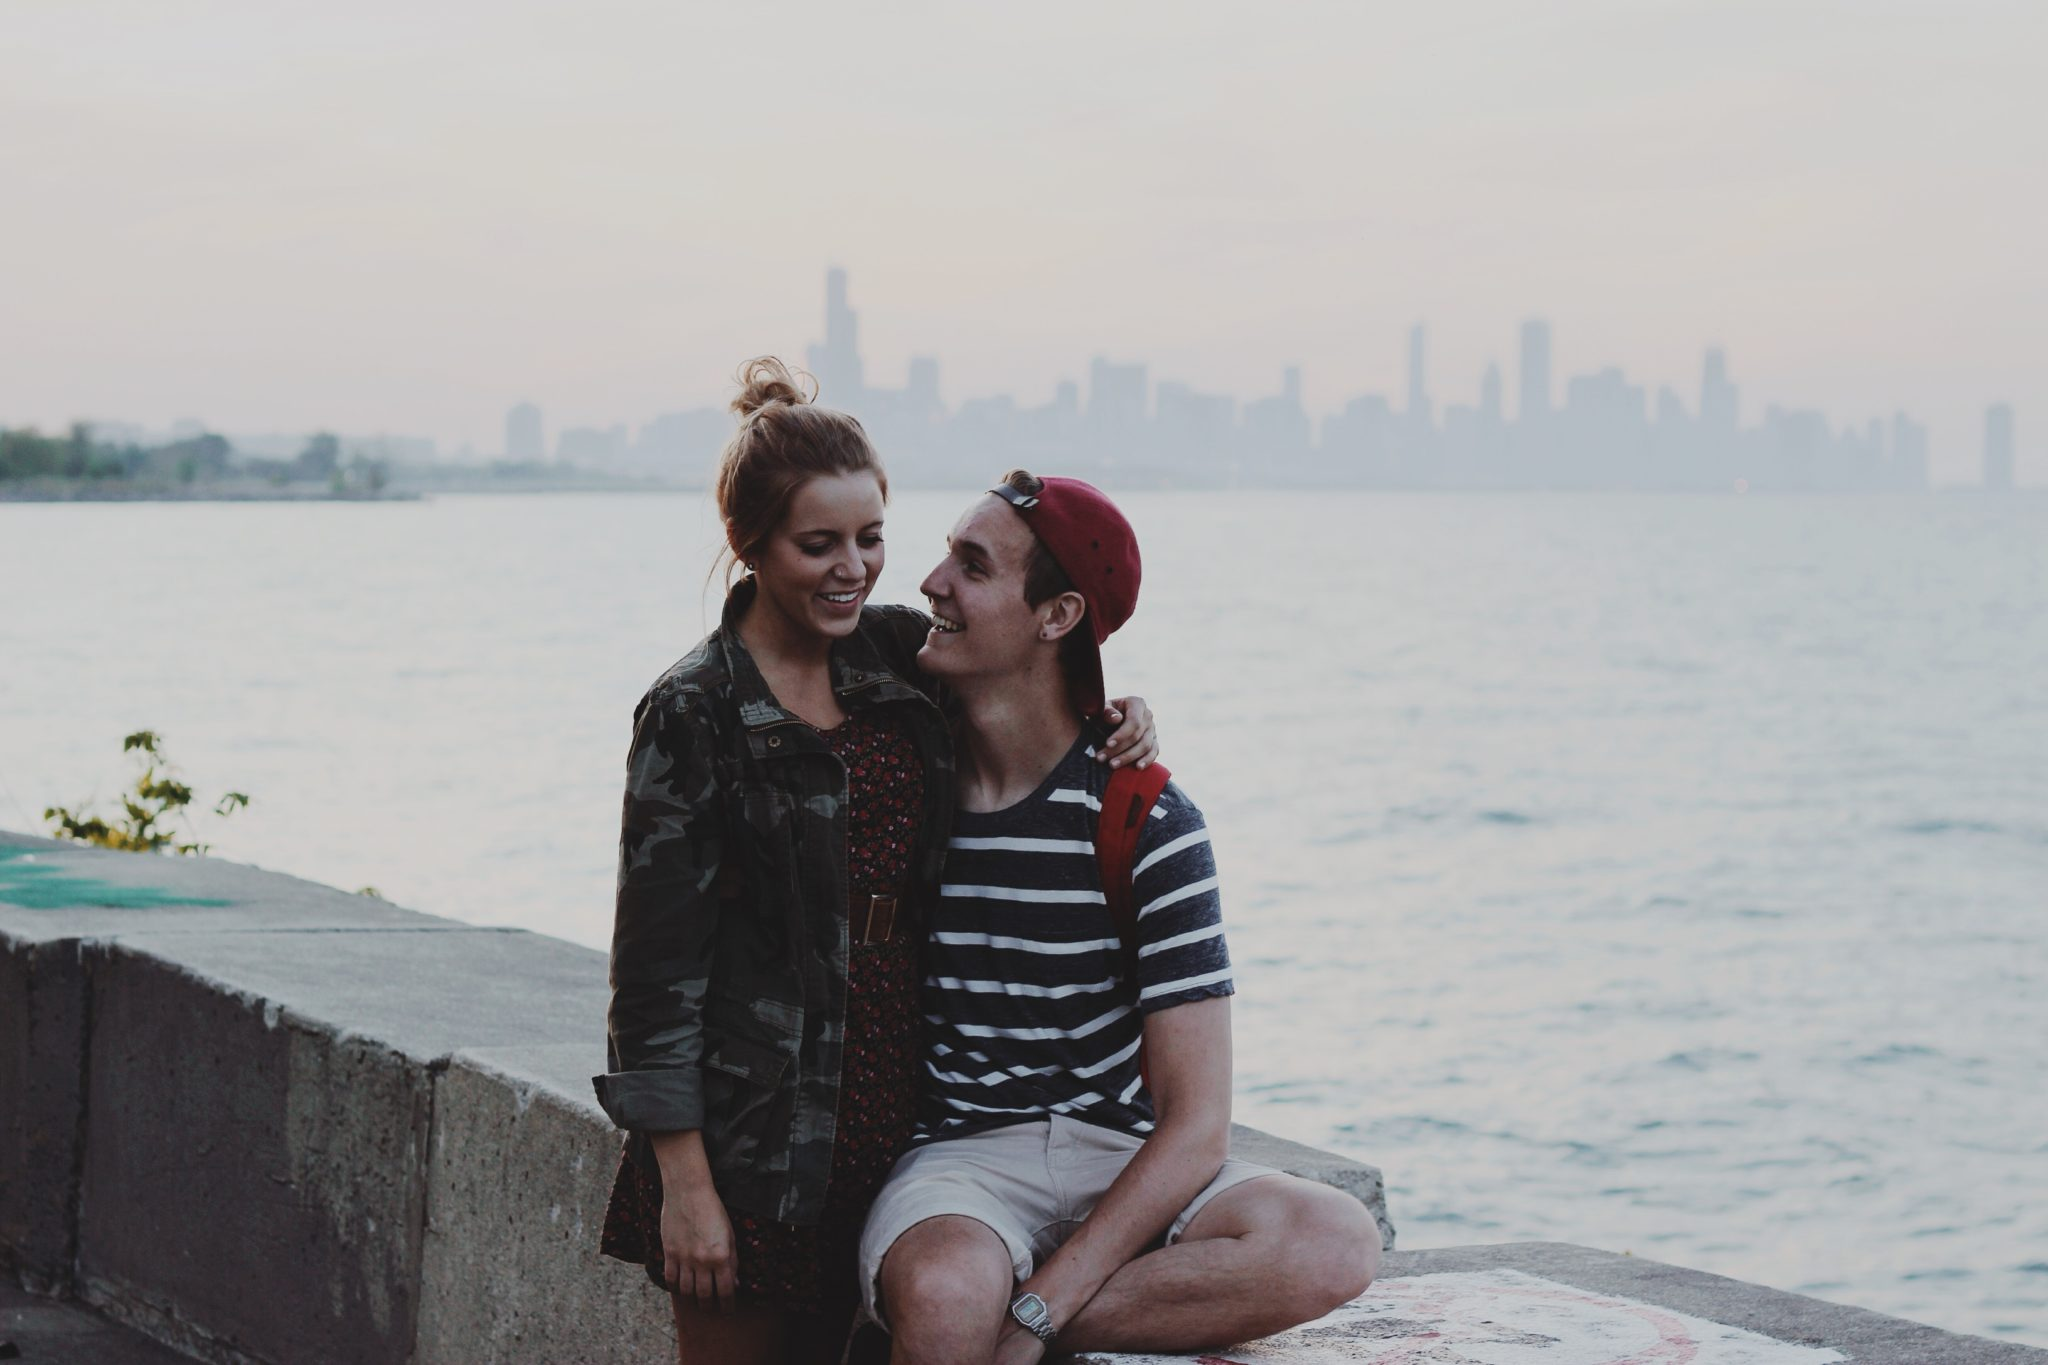 6 Reasons Why A Relationship Makes You A Better Person